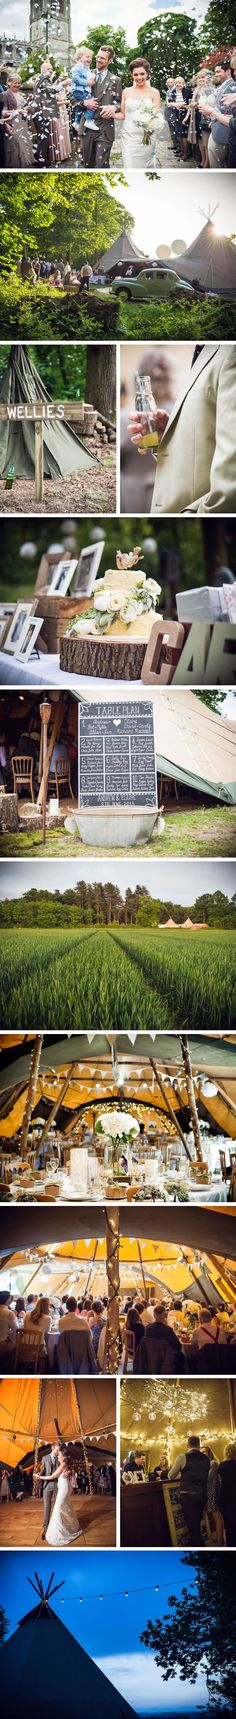 Here's a wedding reception held in what i consider to be the ultimate festival tent, a Papakata Teepee. They look amazing and our mates at papakata do a great job, have some awesome decoration and furniture and always look after our wedding parties. Boho Beach Wedding, Tipi Wedding, Outdoor Wedding Venues, Our Wedding, Wedding Parties, Wedding Dresses, Wedding Reception Program, Church Wedding Decorations, Winter Wedding Colors